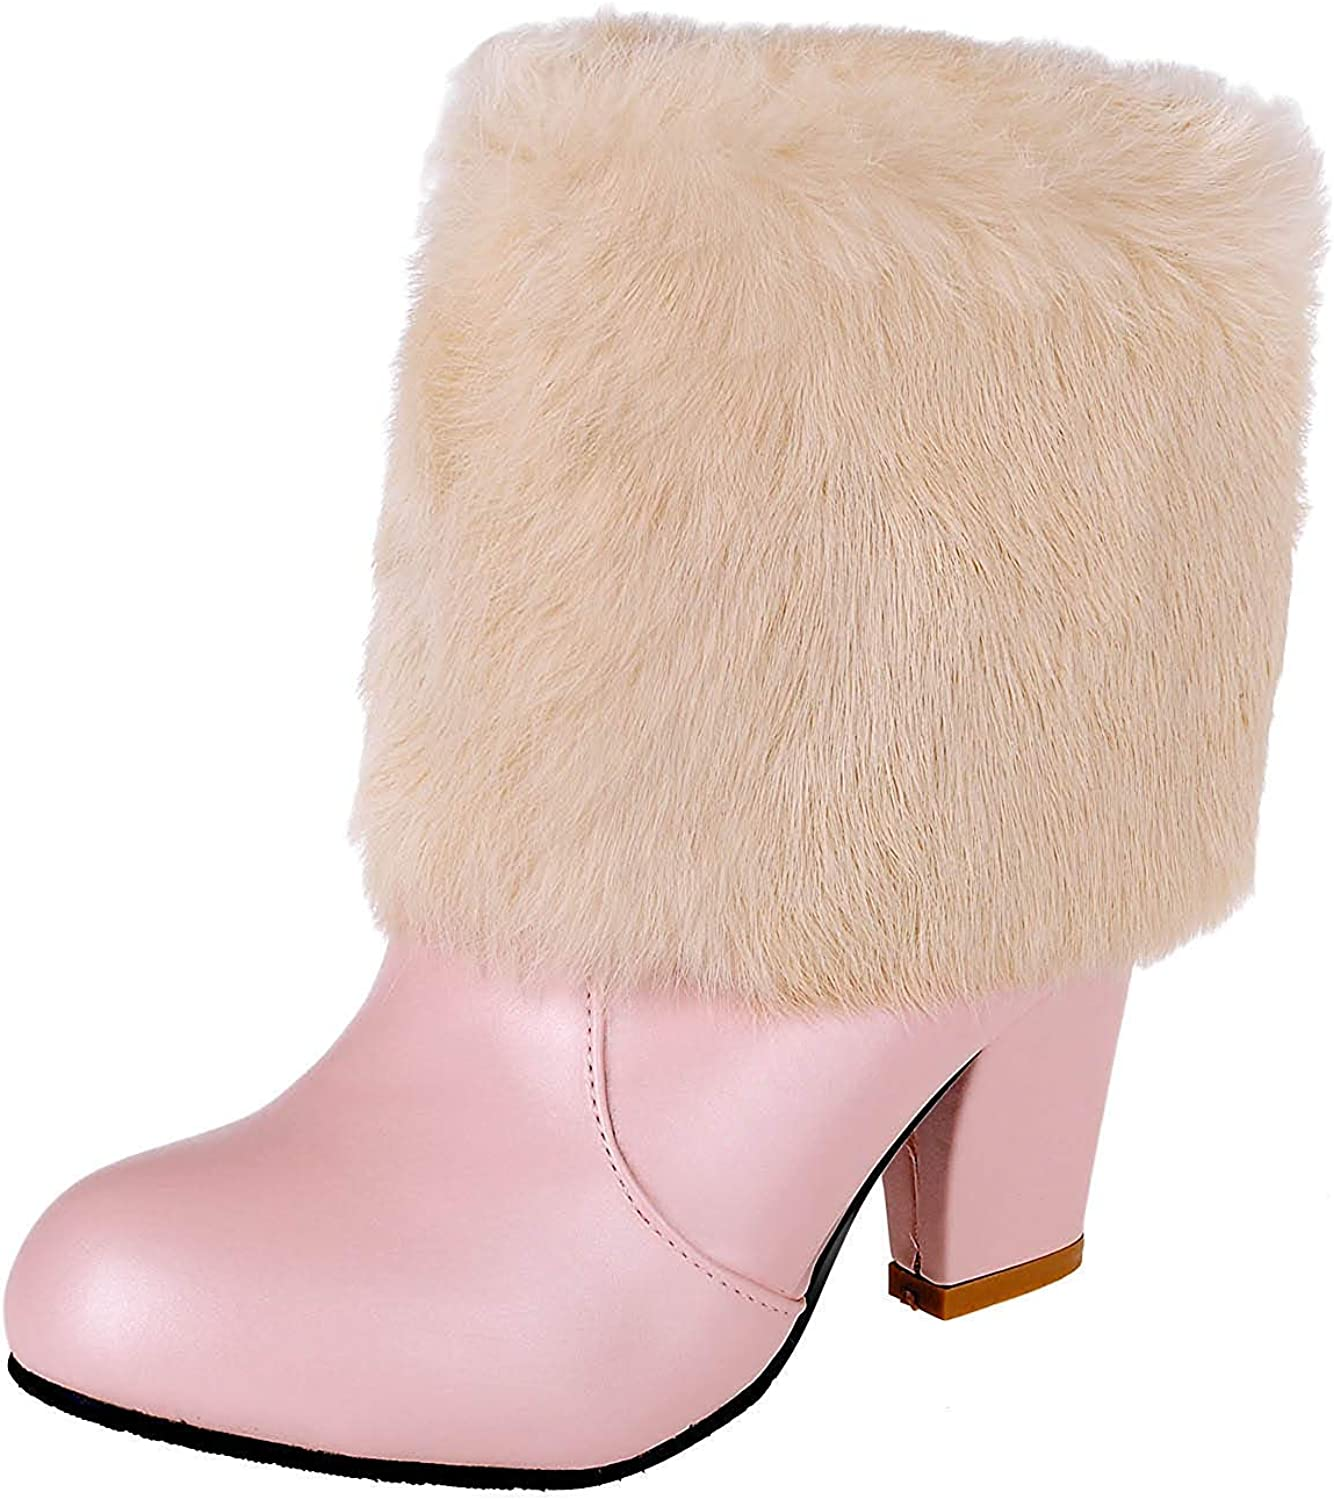 Unm Women's Cute Faux Furry Pull On Round Toe Short Boots Chunky High Heel Dress Ankle Booties